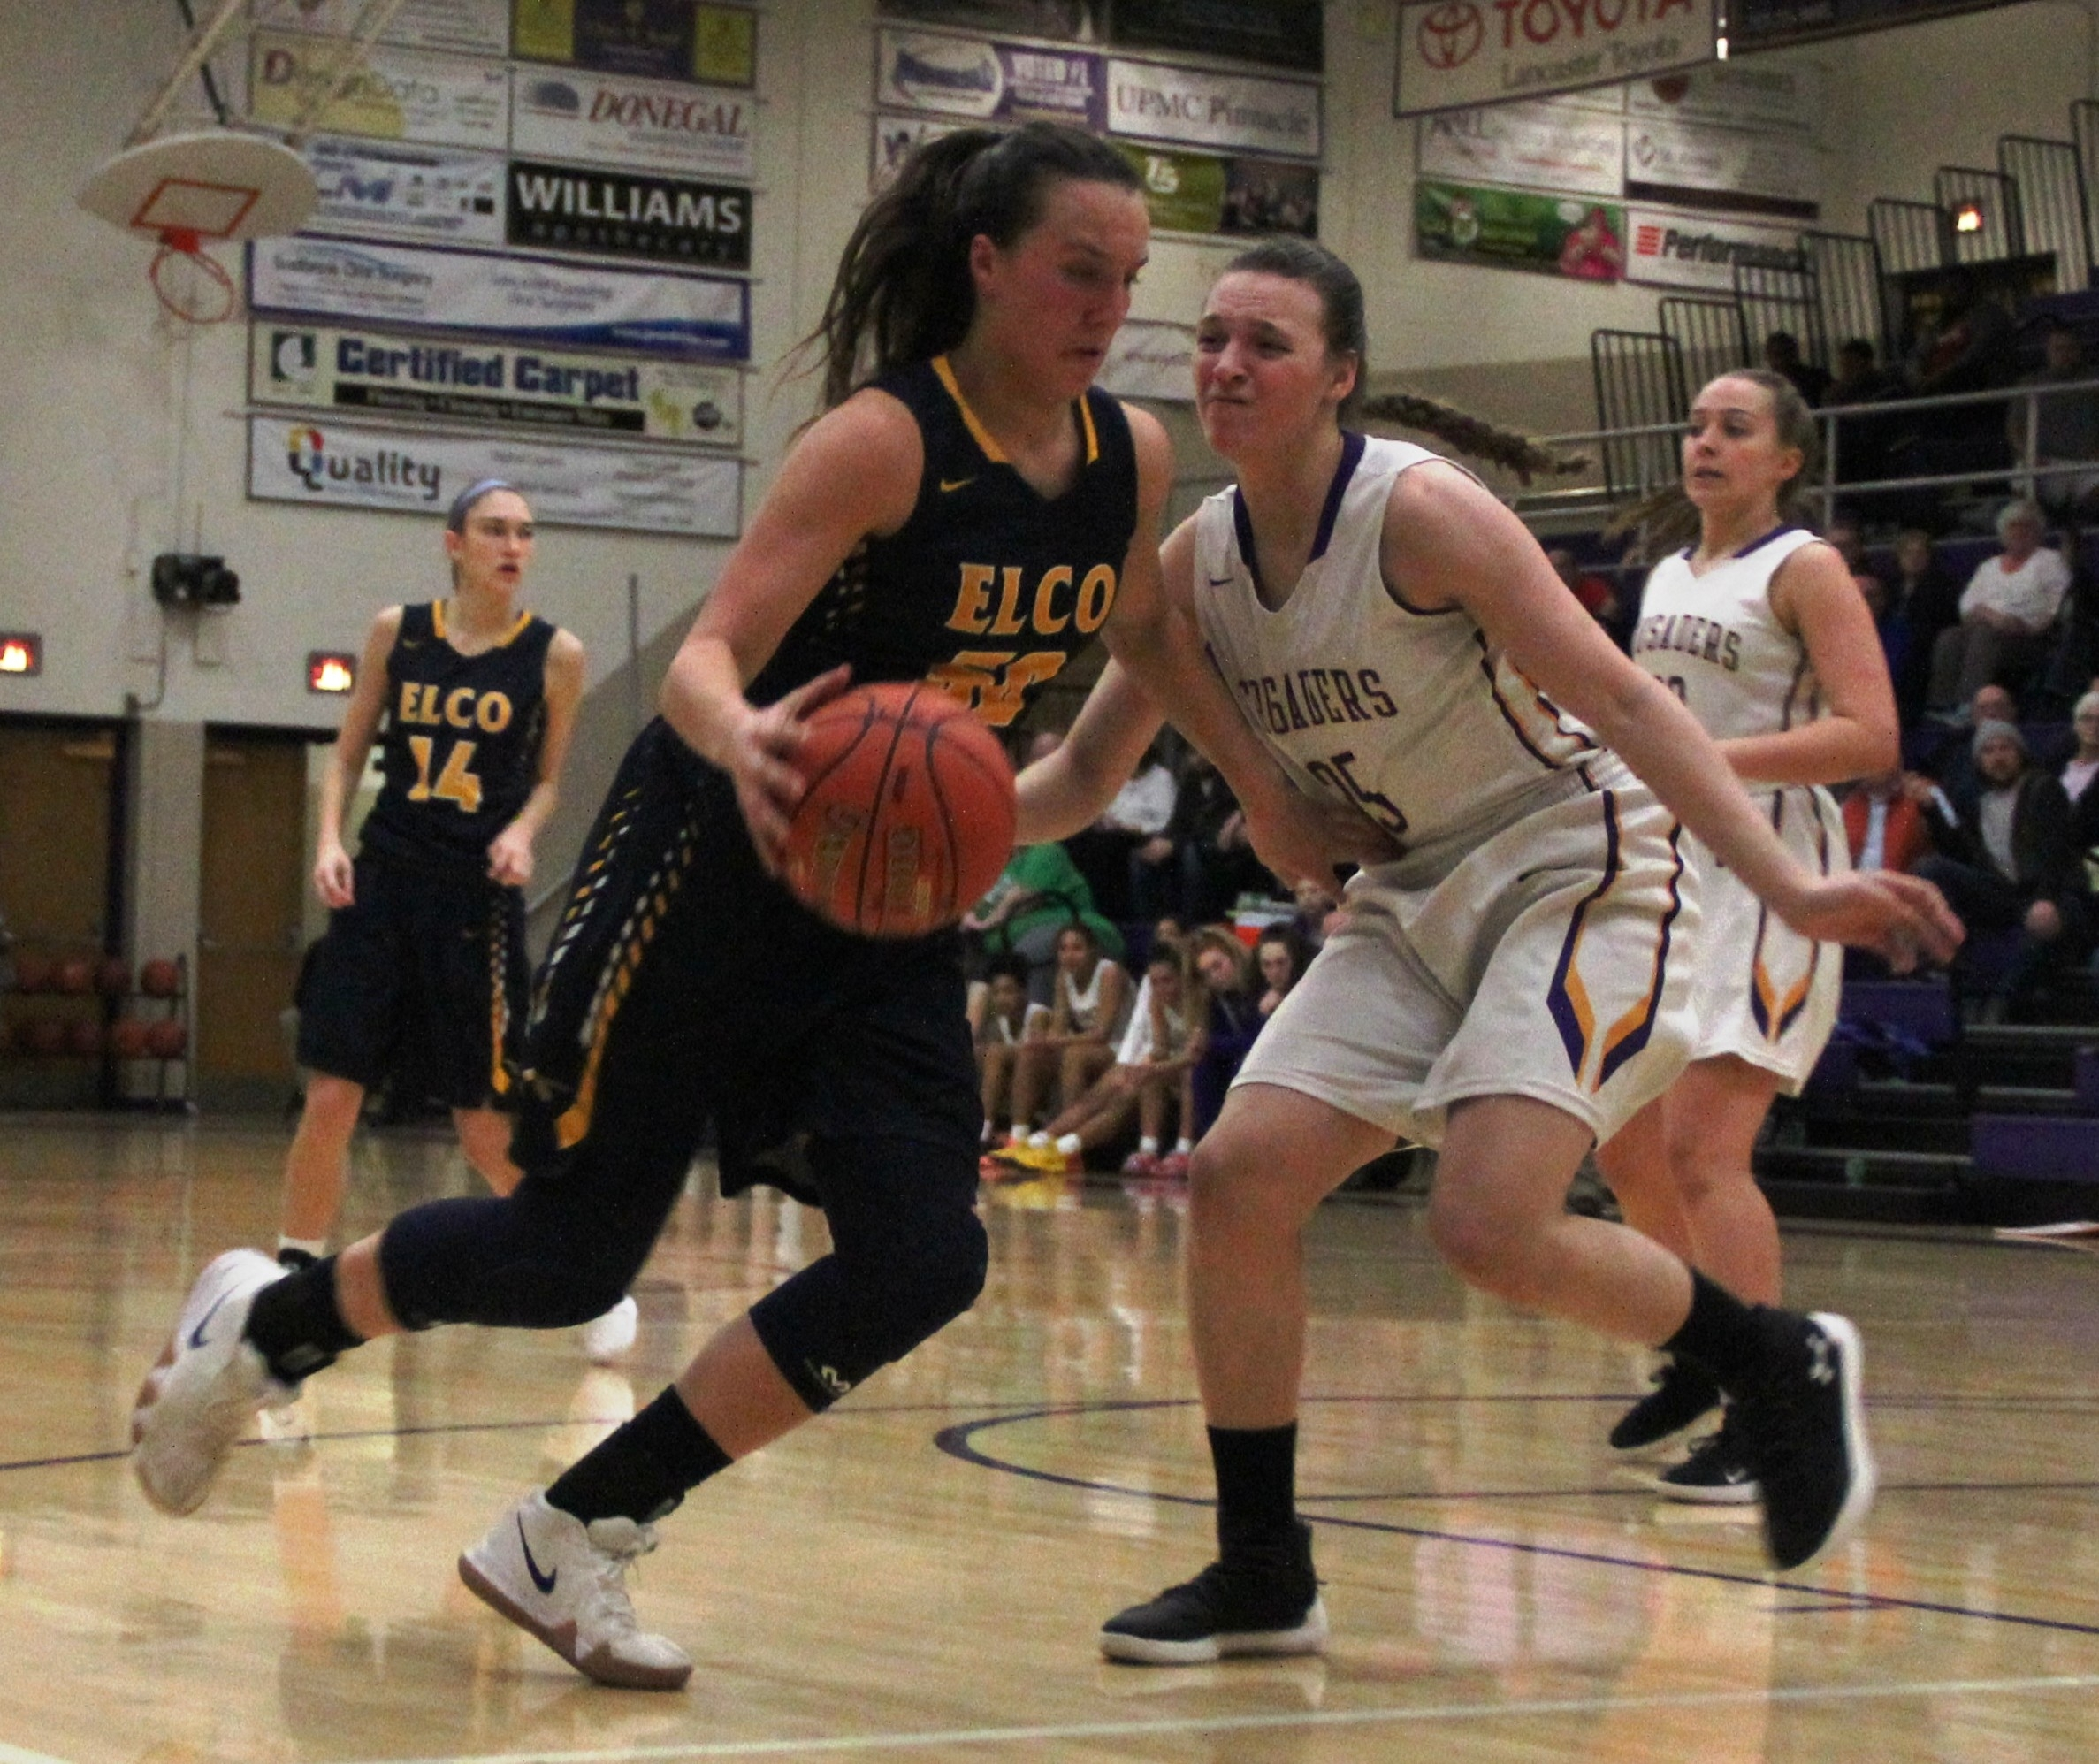 Elco girls' basketball 042